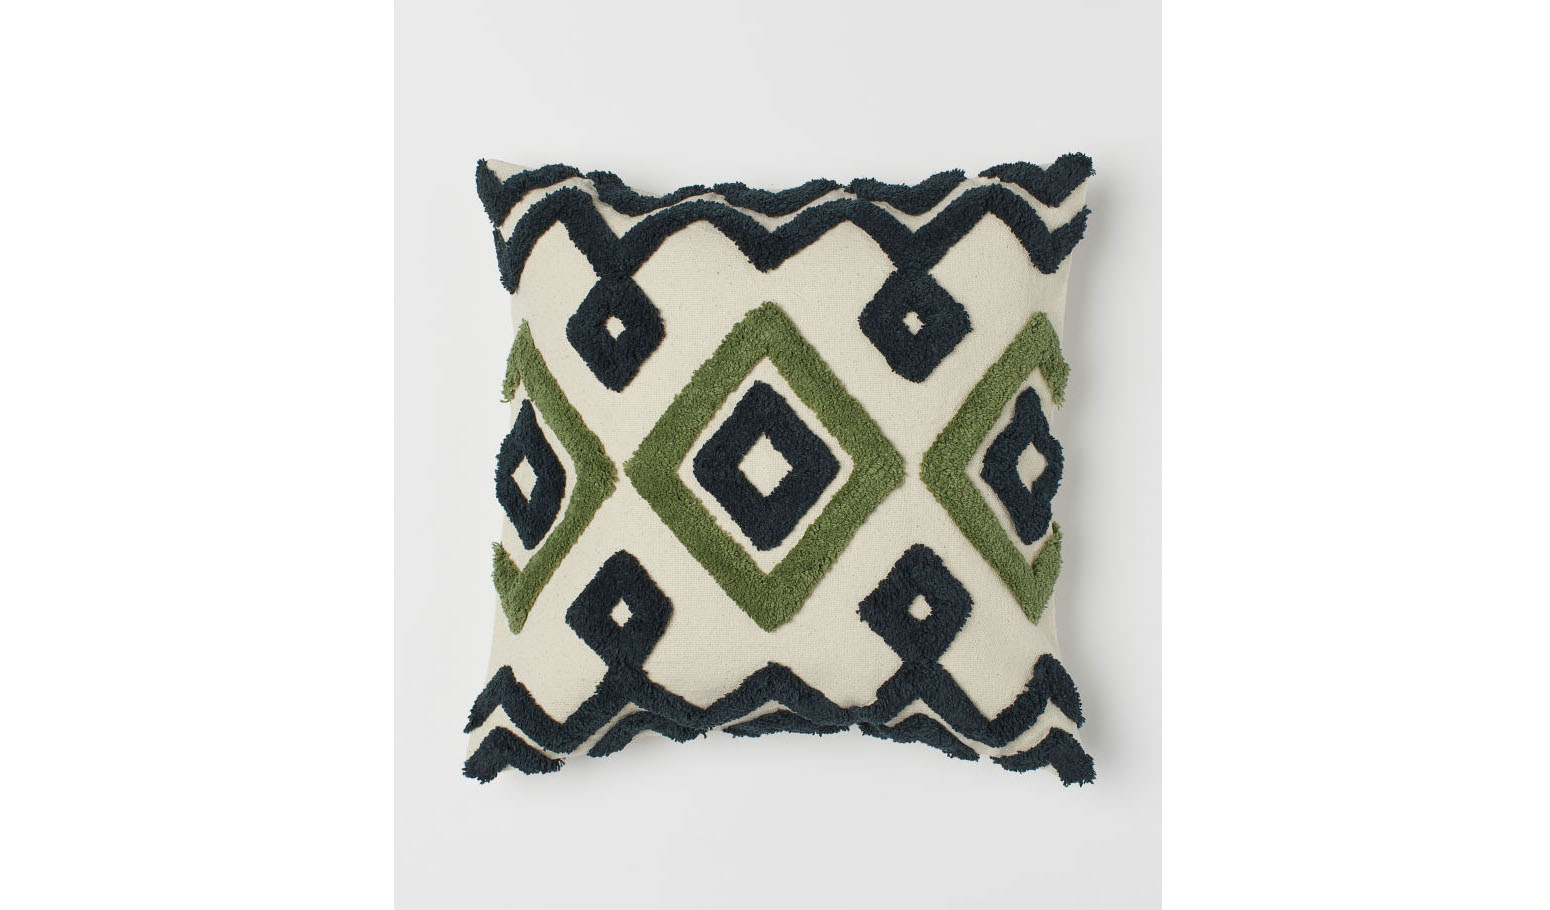 Embroidered Cushion Cover in Light Beige/Green